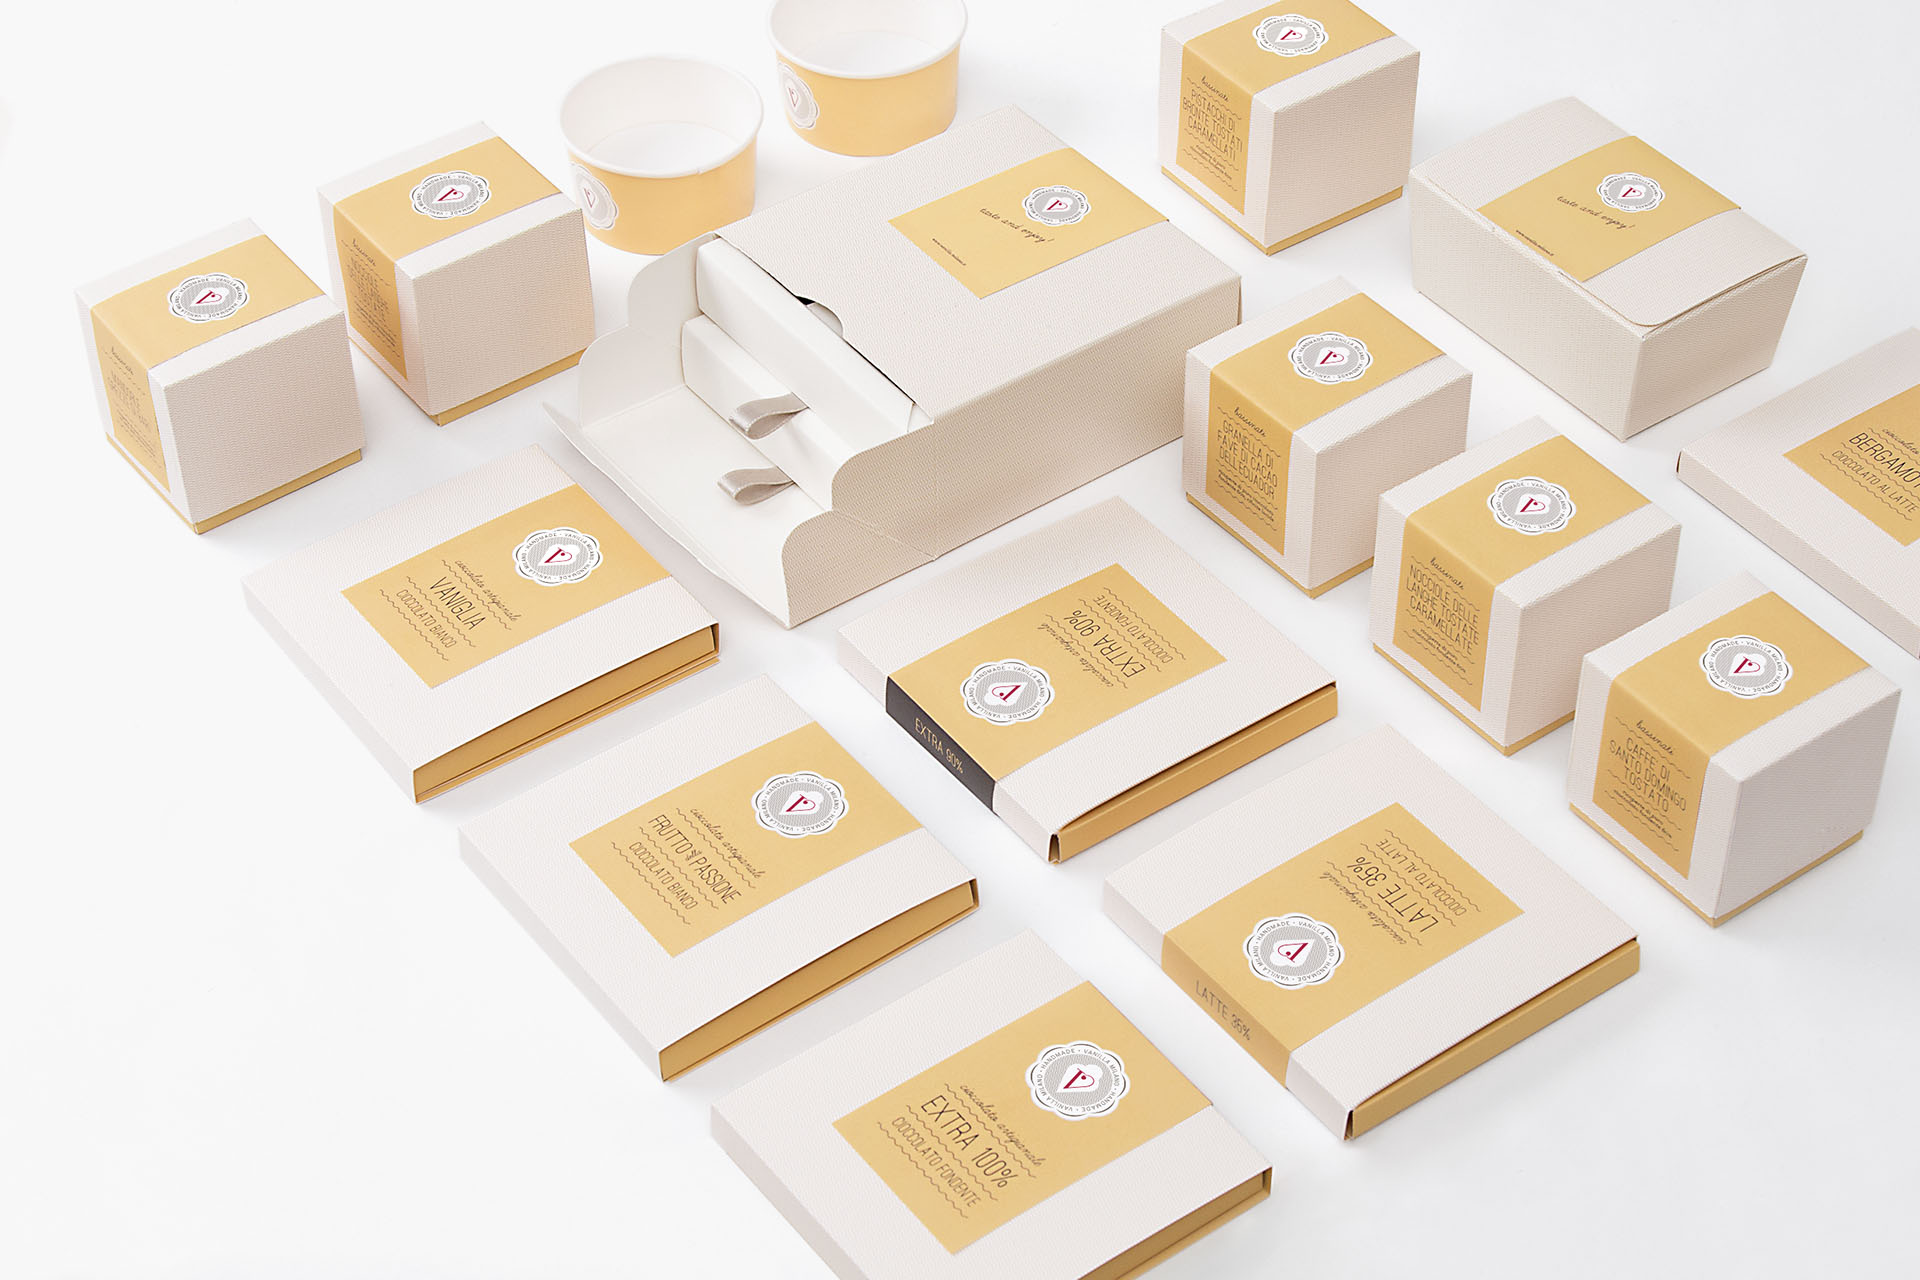 Homemade Ice-Cream Shop, Patisserie and Coffee Bar Branding and Packaging Design